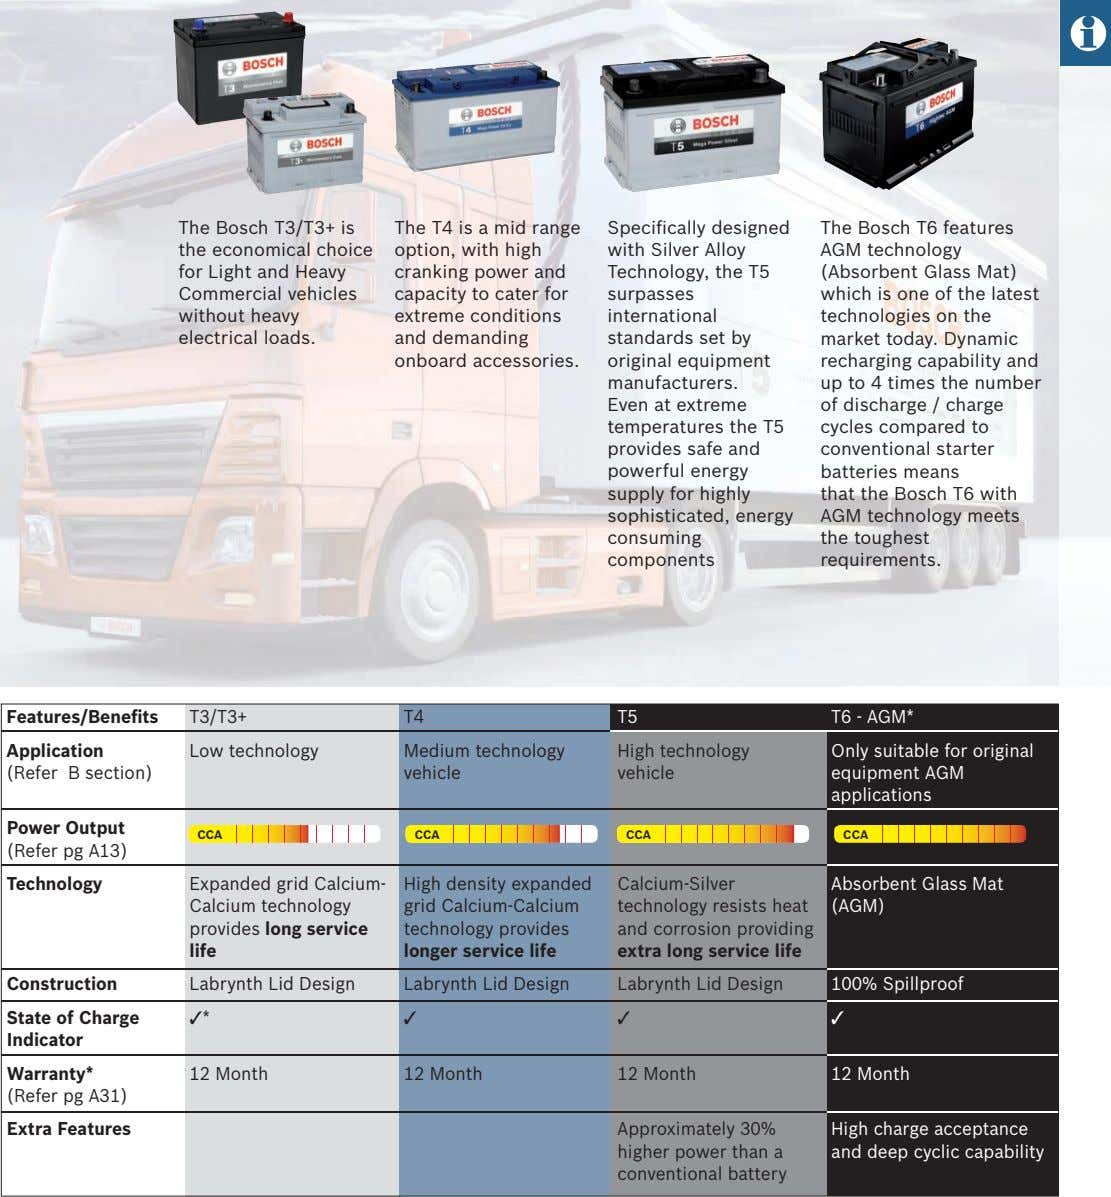 The Bosch T3/T3+ is the economical choice for Light and Heavy Commercial vehicles without heavy